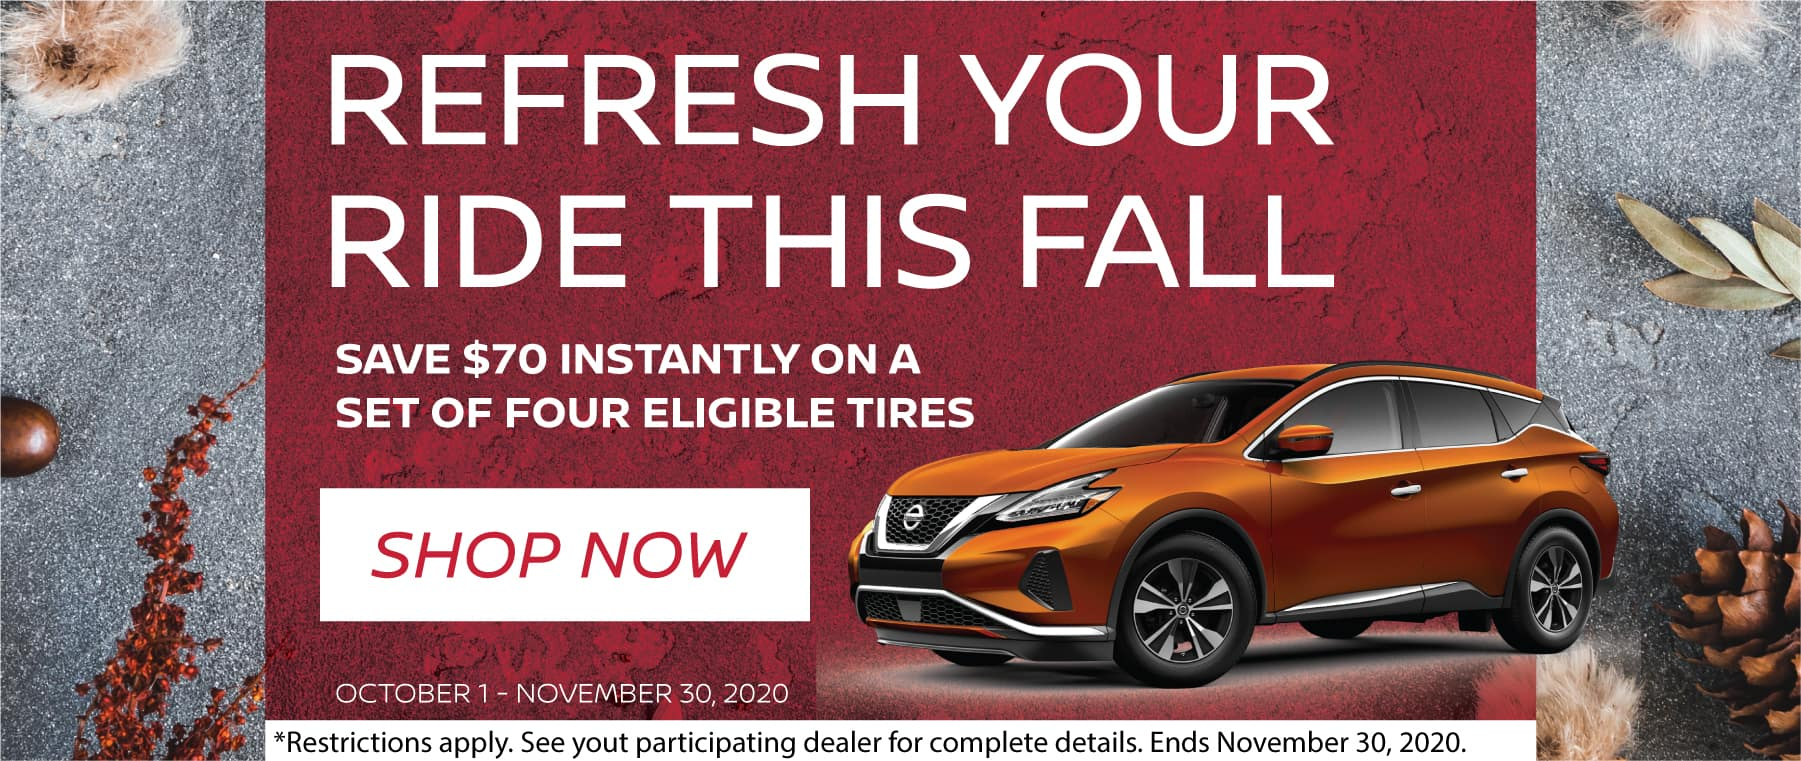 Refresh Your Ride This Fall